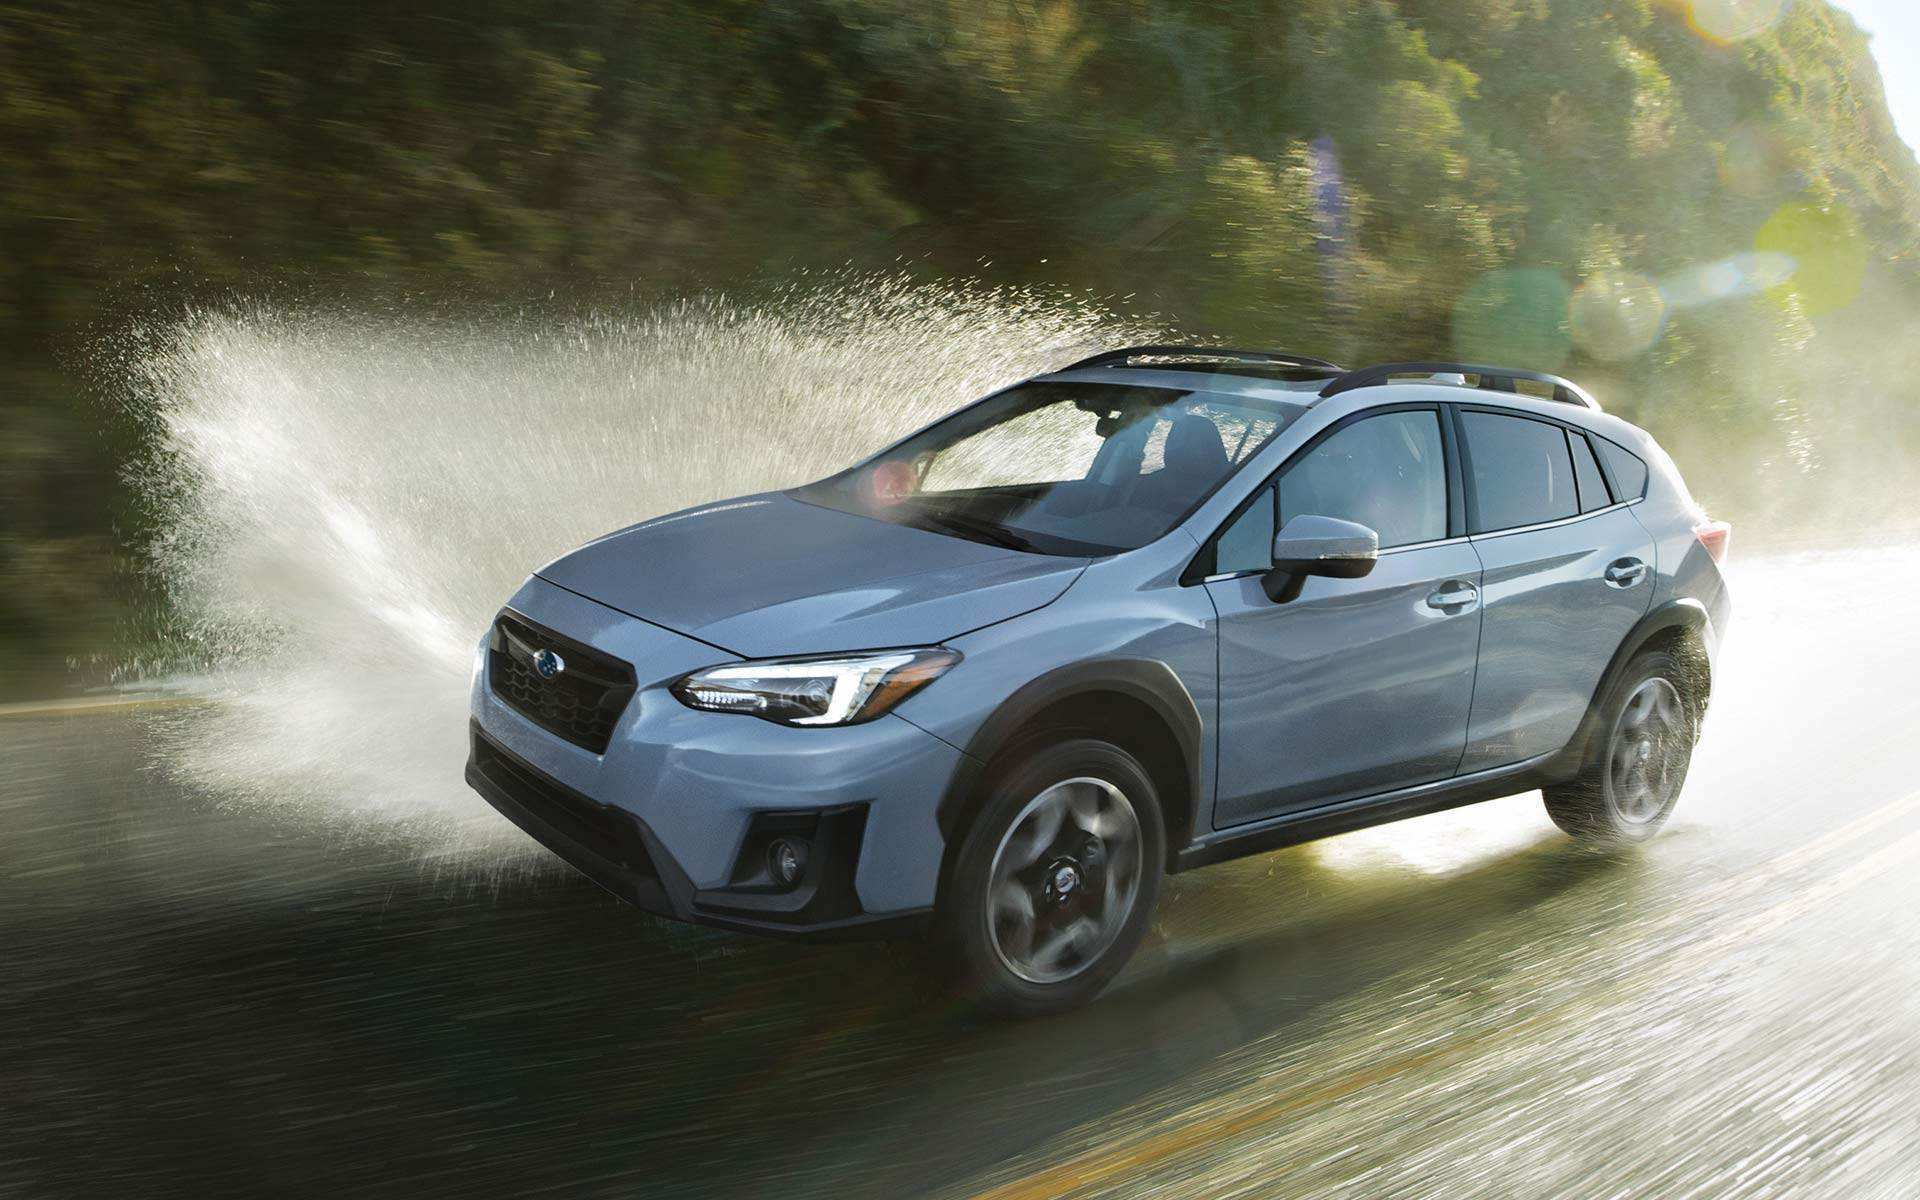 88 New Subaru Xv Turbo 2019 Rumors